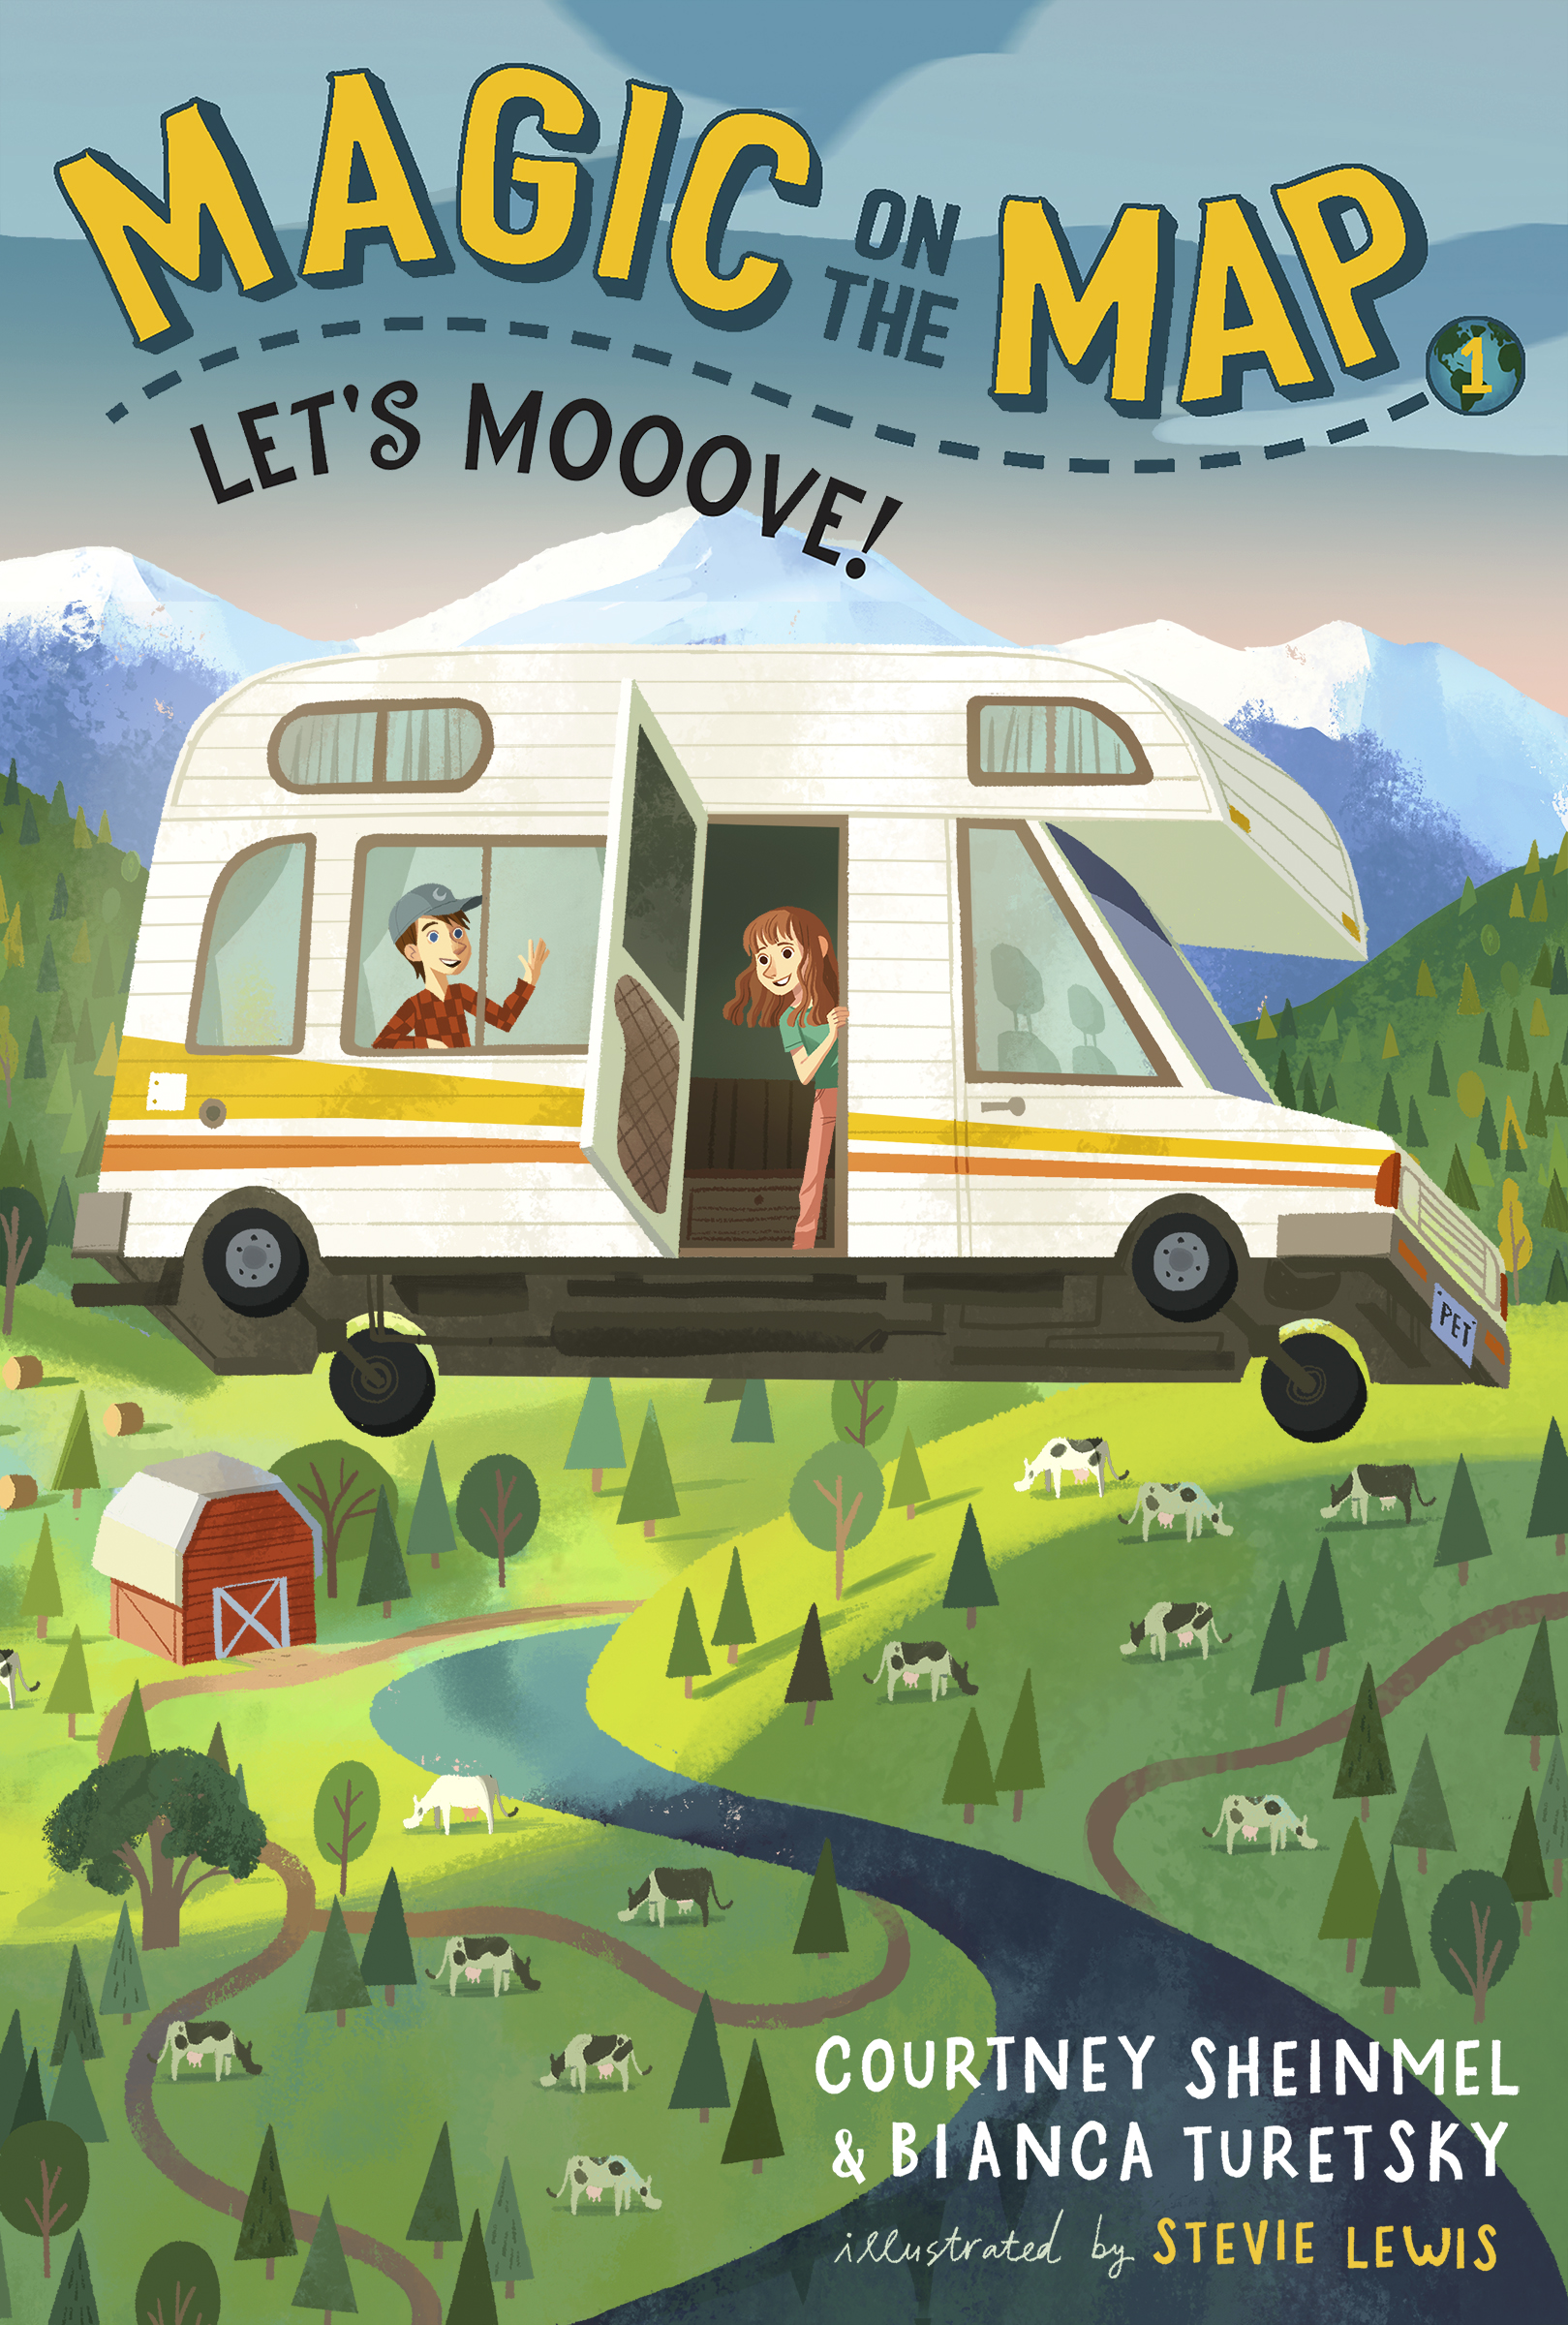 Book Title: Magic on the Map #1: Let's Mooove! Authors: Courtney Sheinmel & Bianca Turetsky Publisher: Random House Date of Publication: May 7, 2019